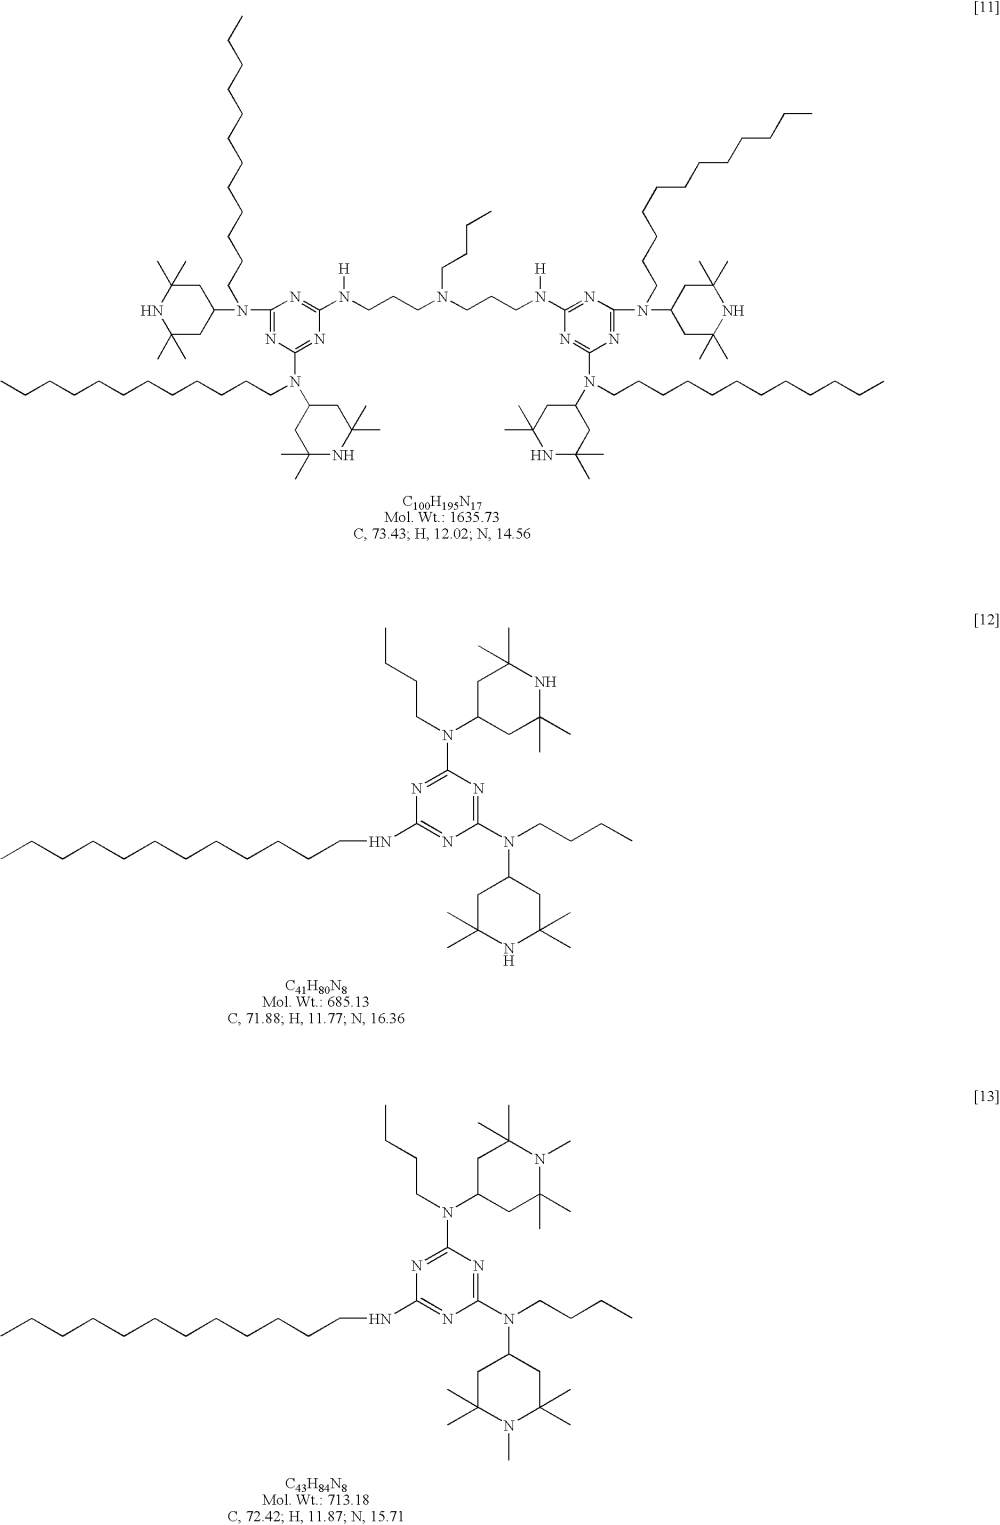 medium resolution of figure us20100074083a1 20100325 c00028